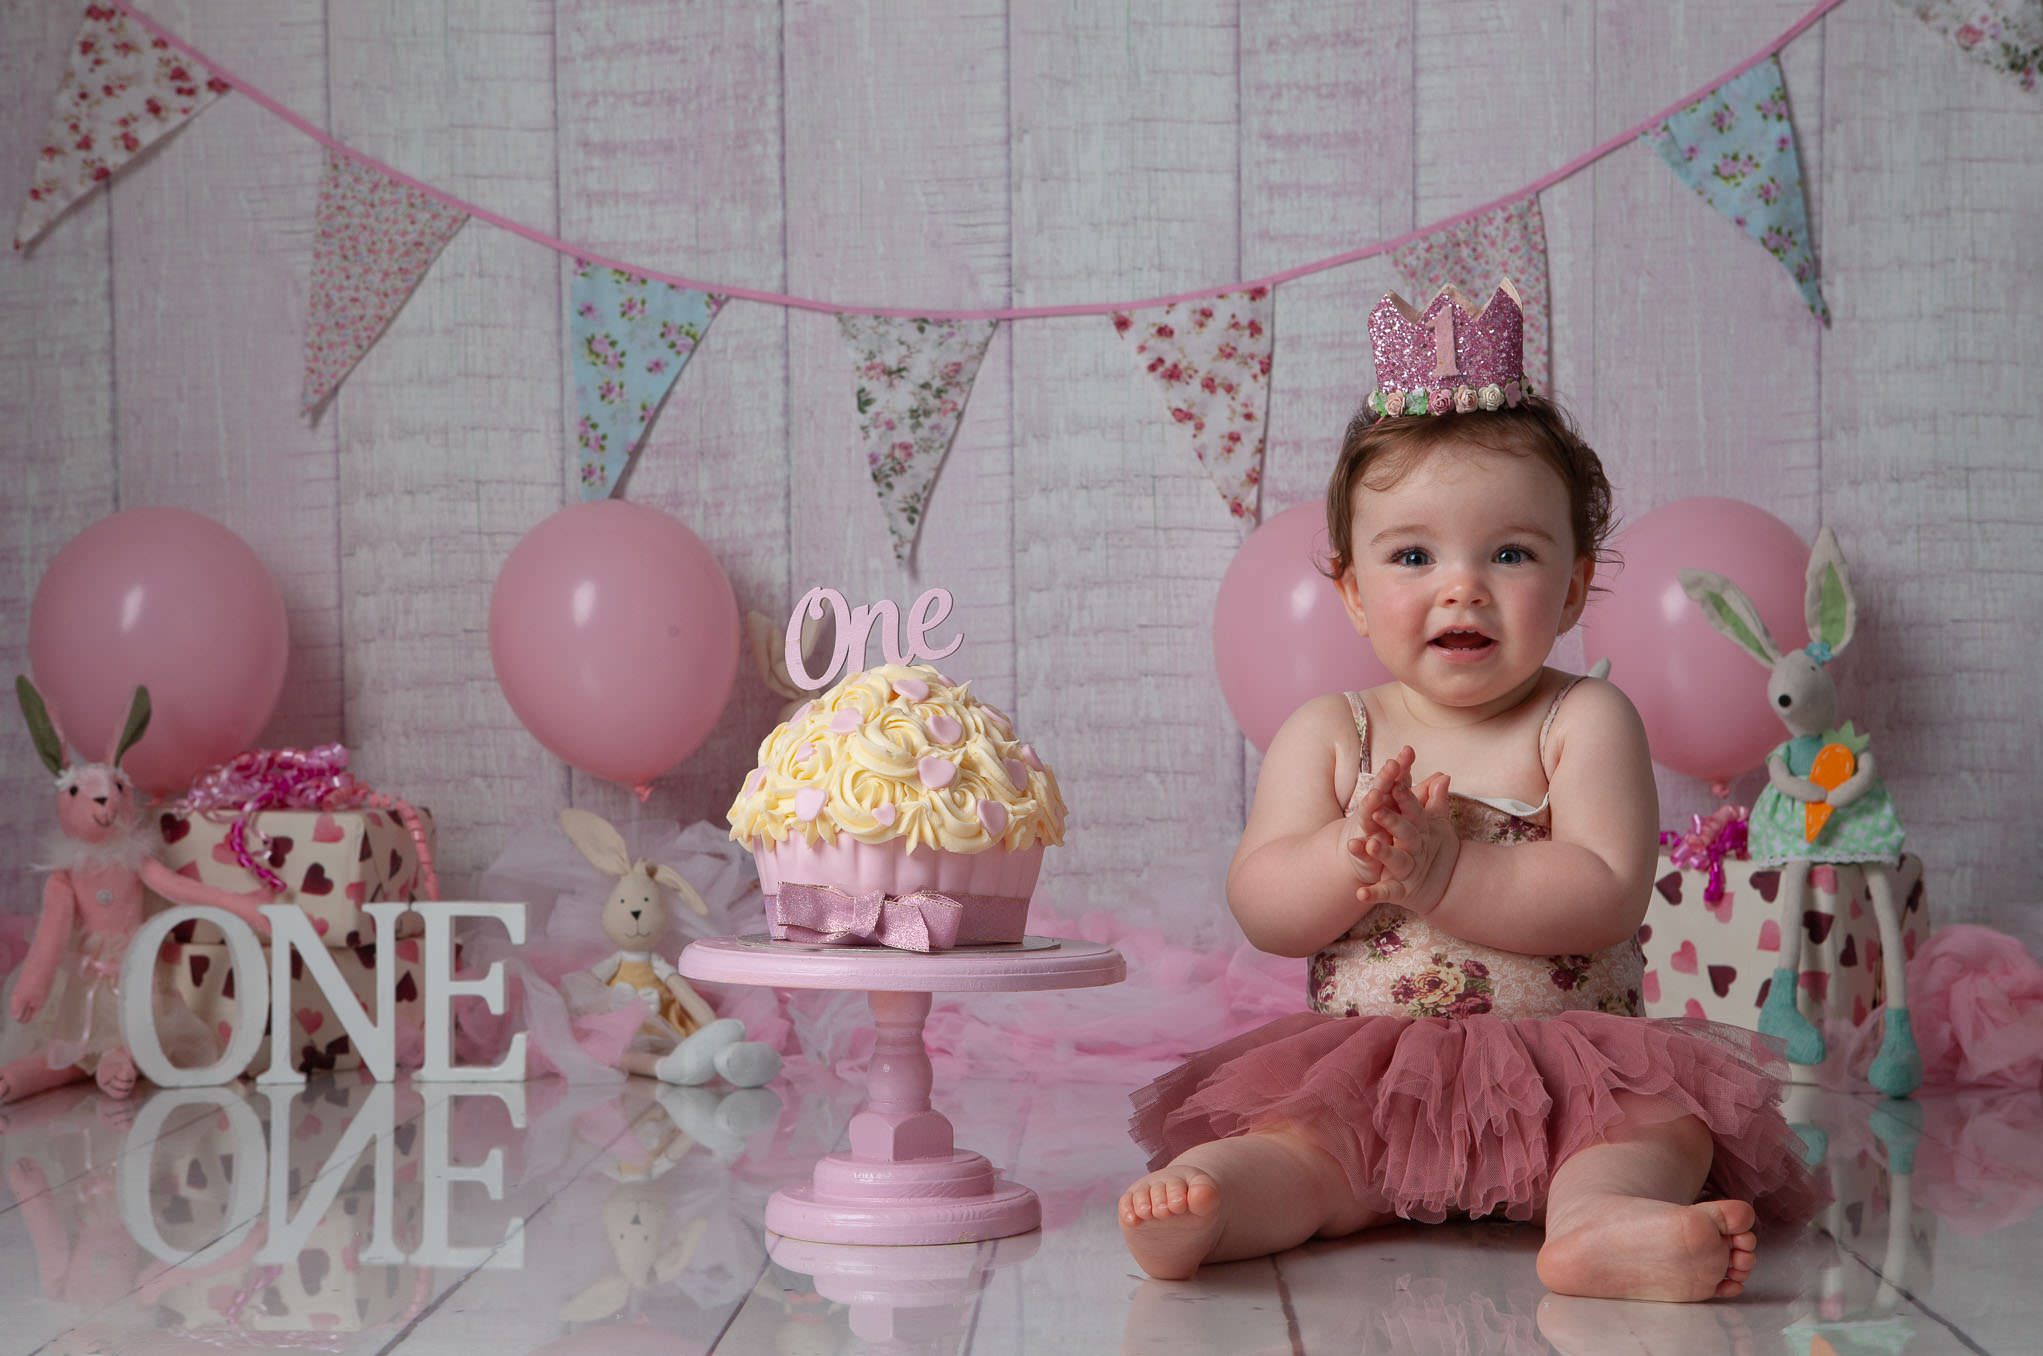 rugeley baby photographer